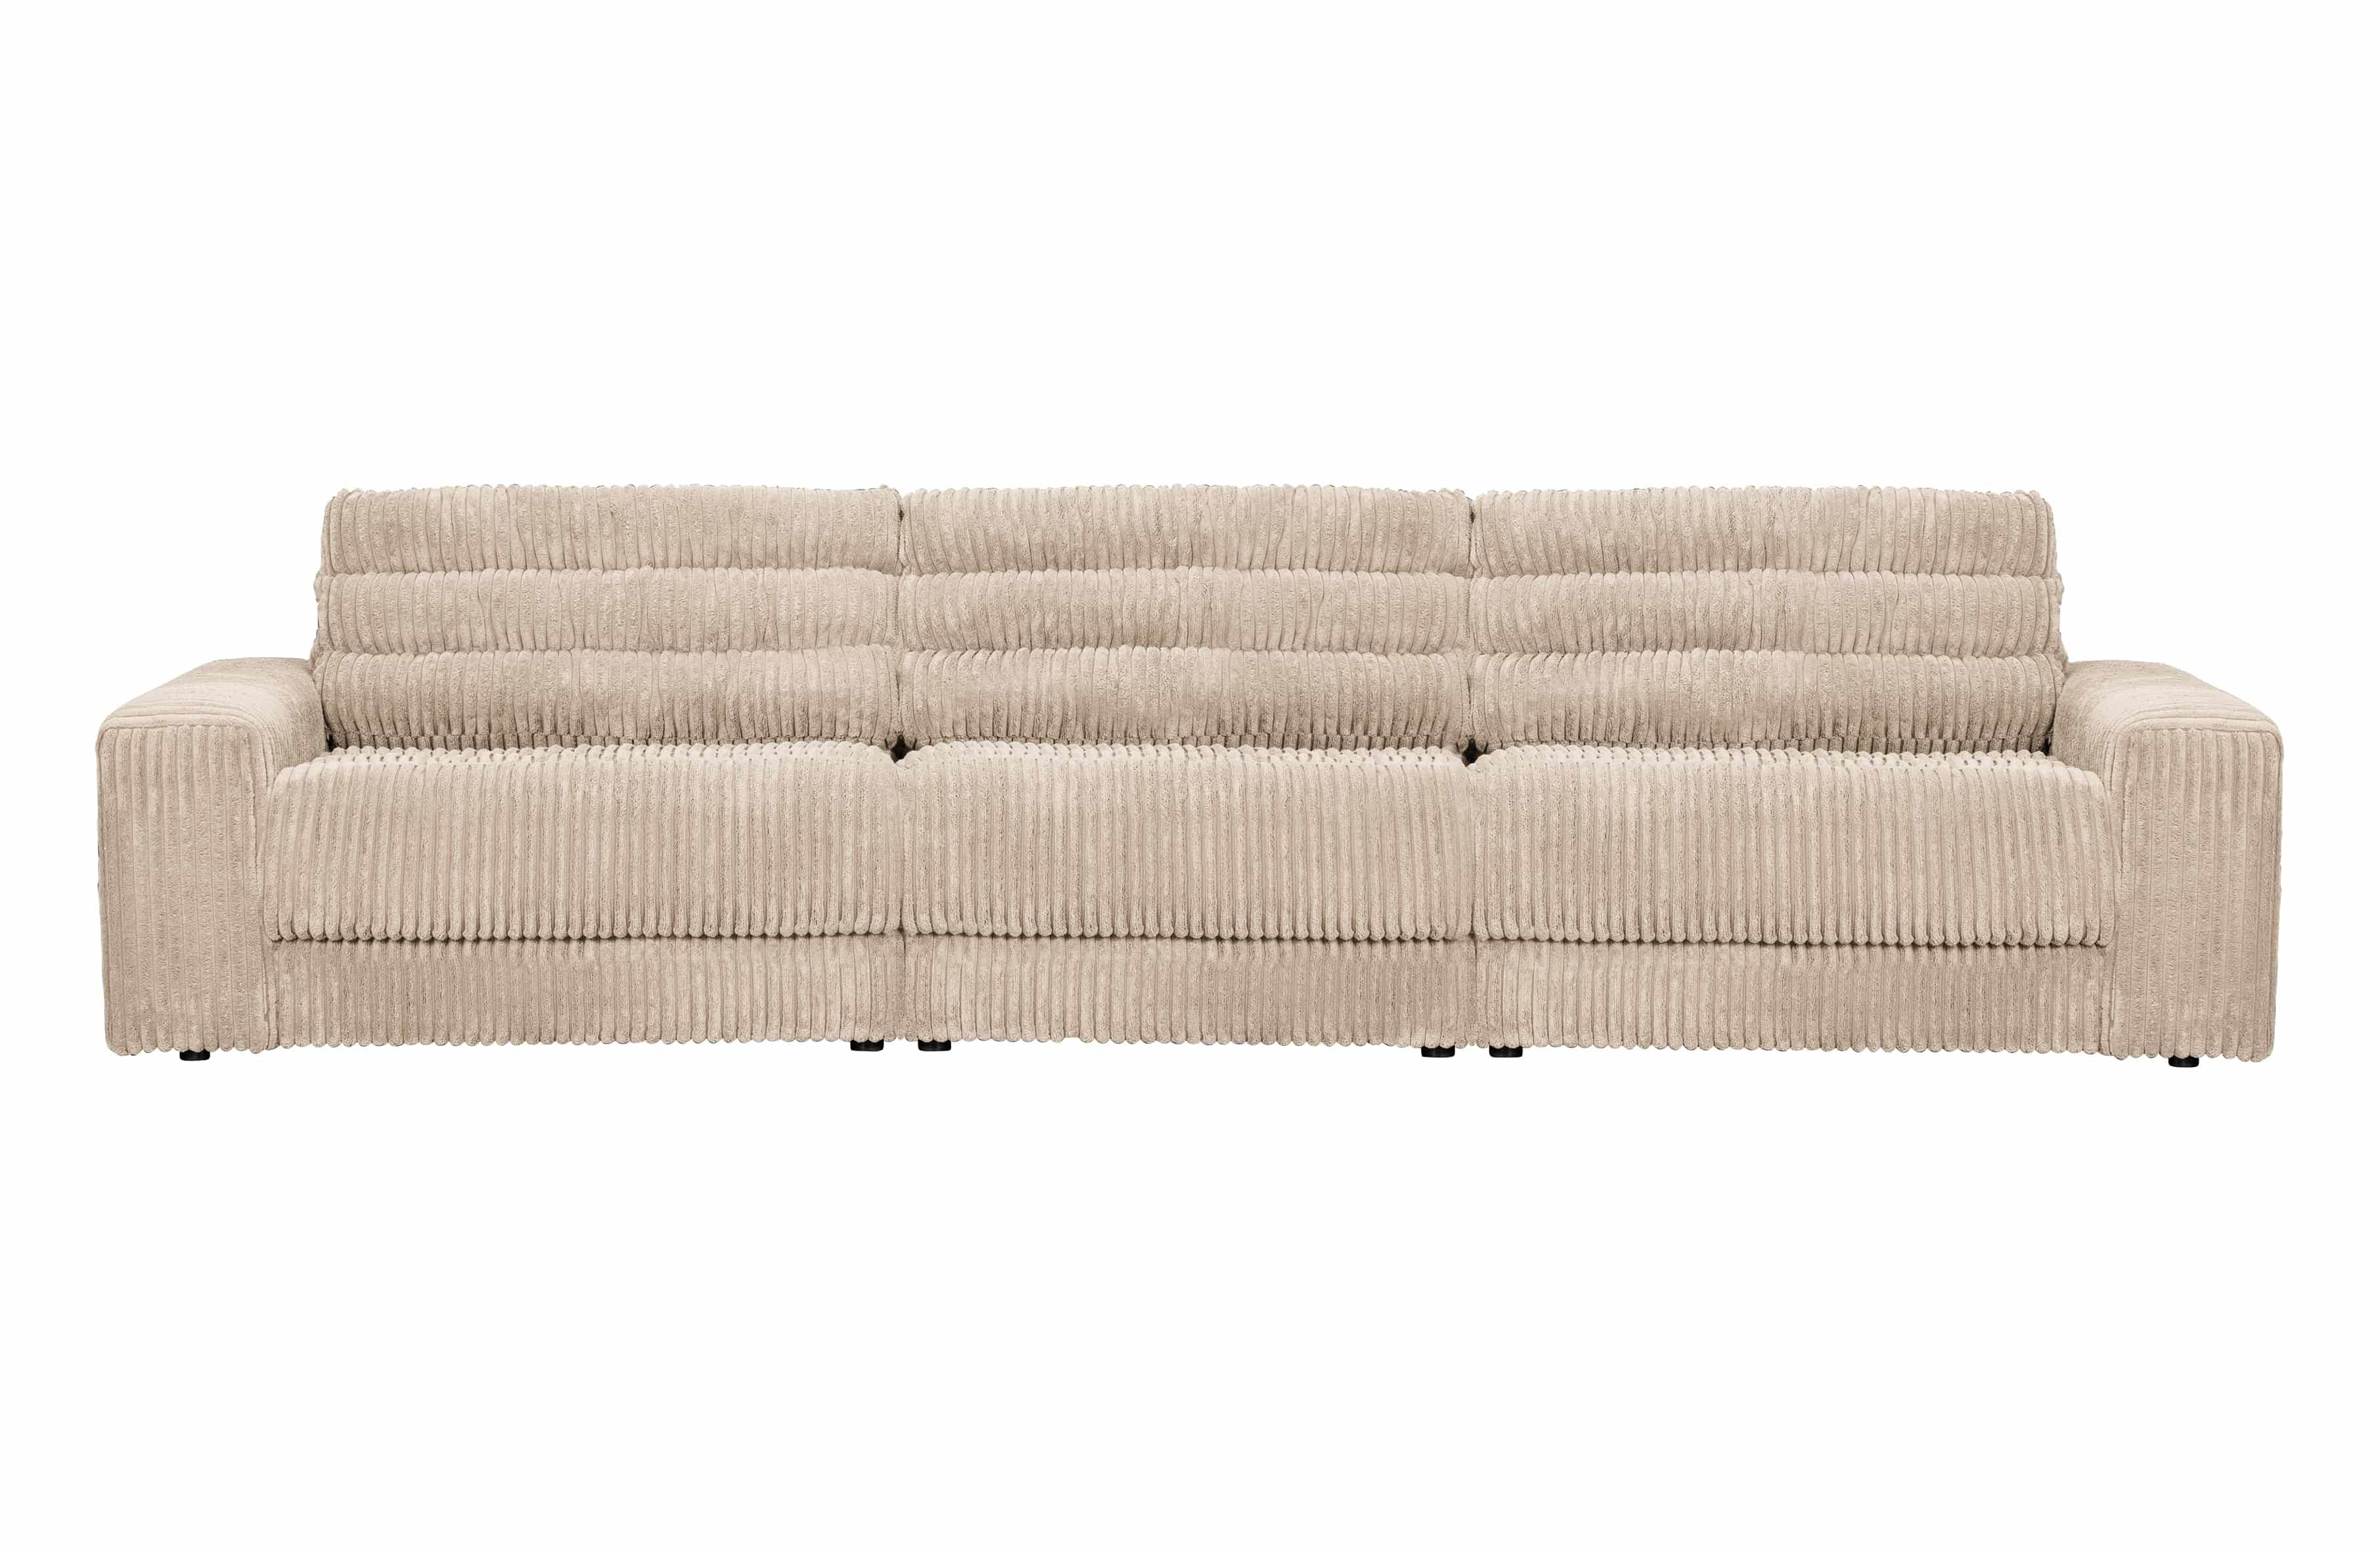 BePureHome Date Polstersofa 3-sitzer ribcord creme